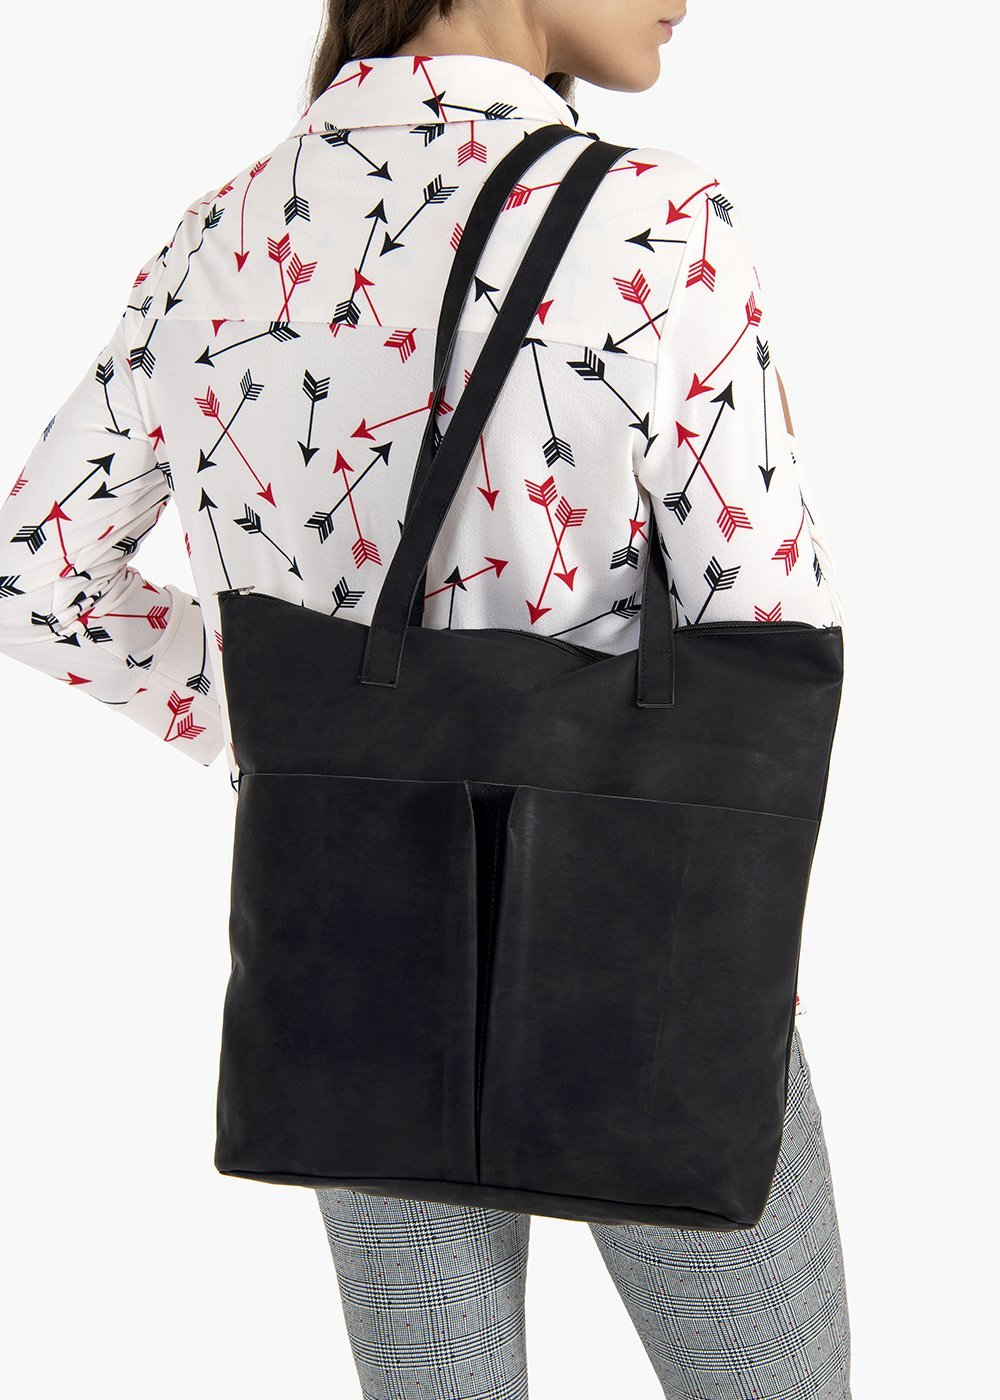 Baylee shopping bag in eco-leather with used effect pockets on the front - Black - Woman